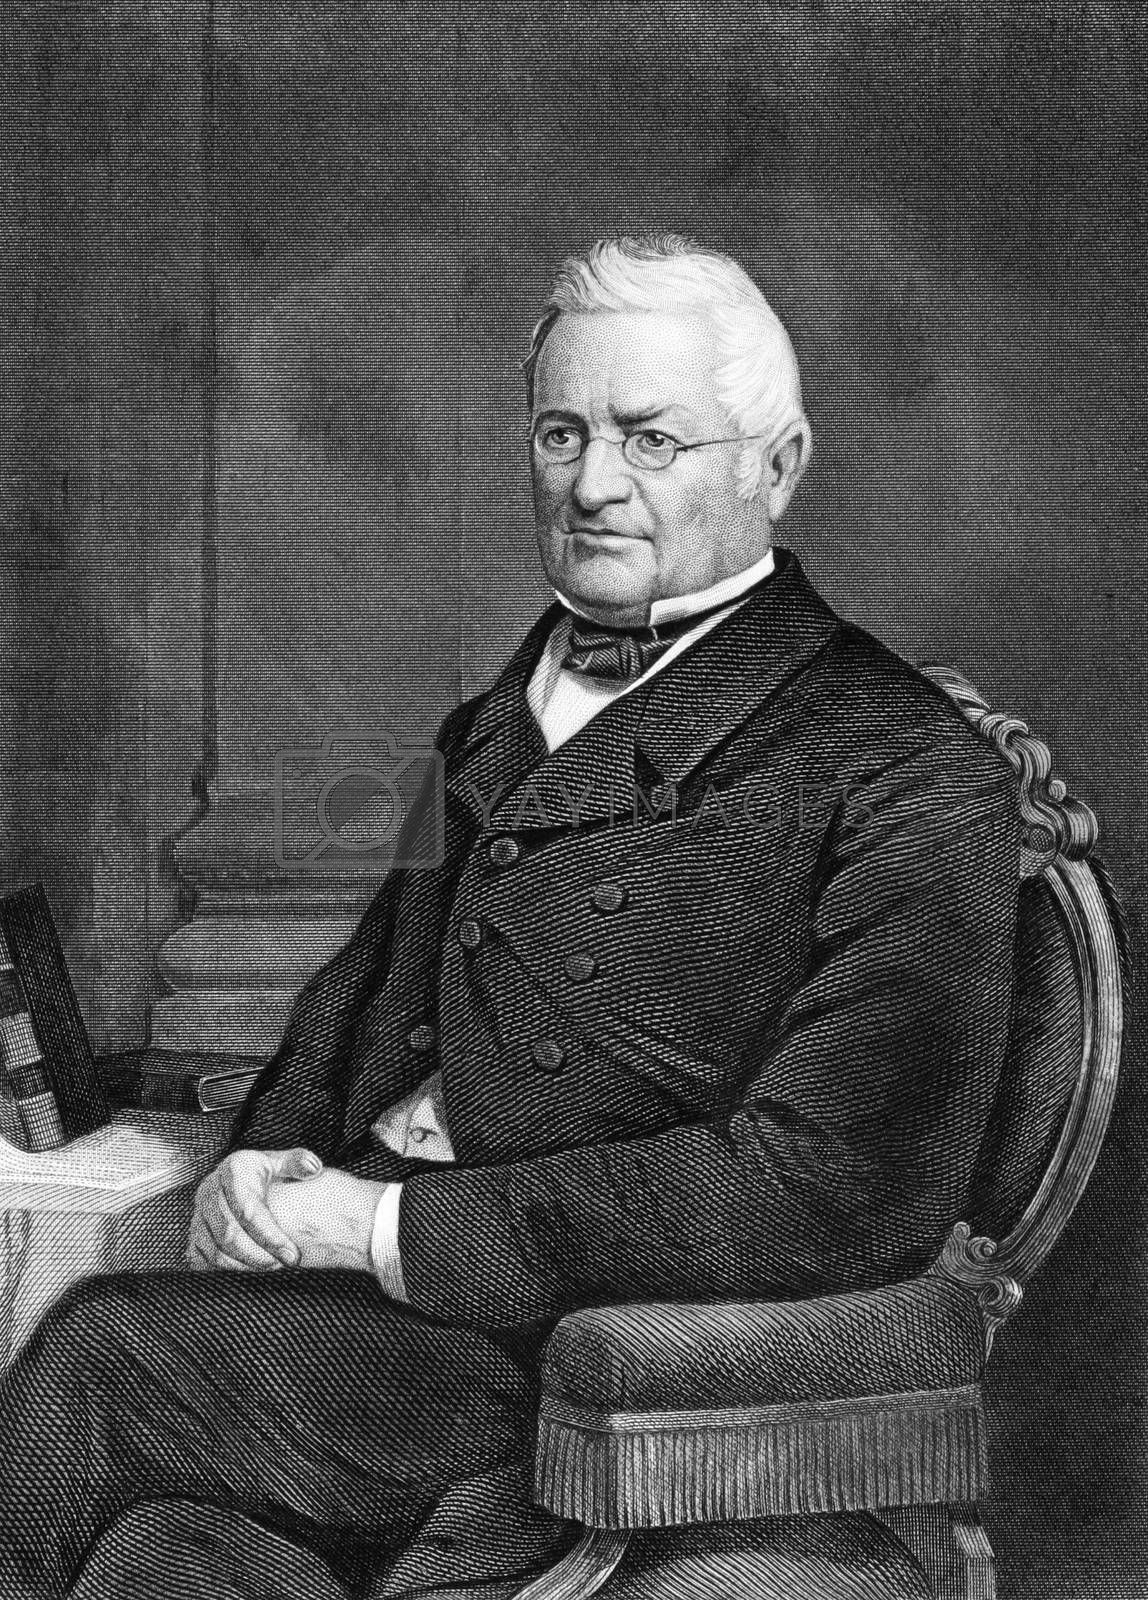 Adolphe Thiers (1797-1877) on engraving from 1873.  French politician and historian. Engraved by unknown artist and published in ''Portrait Gallery of Eminent Men and Women with Biographies'',USA,1873.